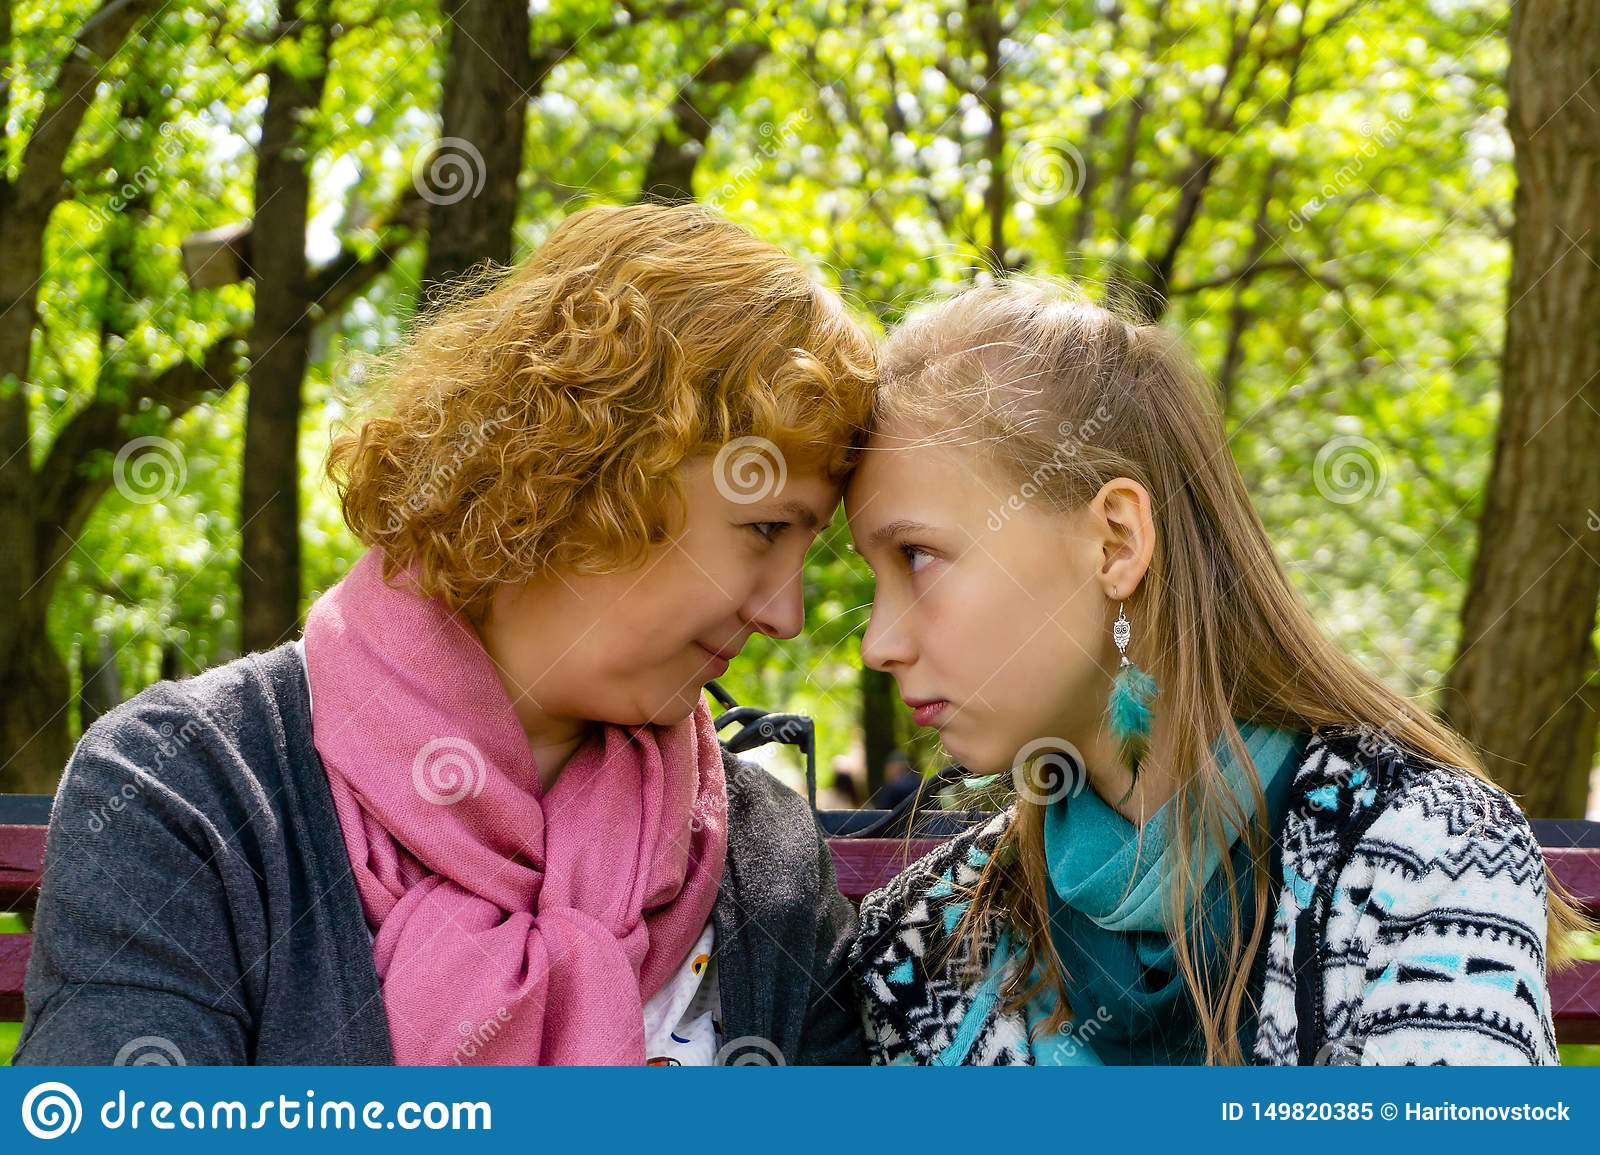 Trusting Communication Between Mother And Daughter Stock